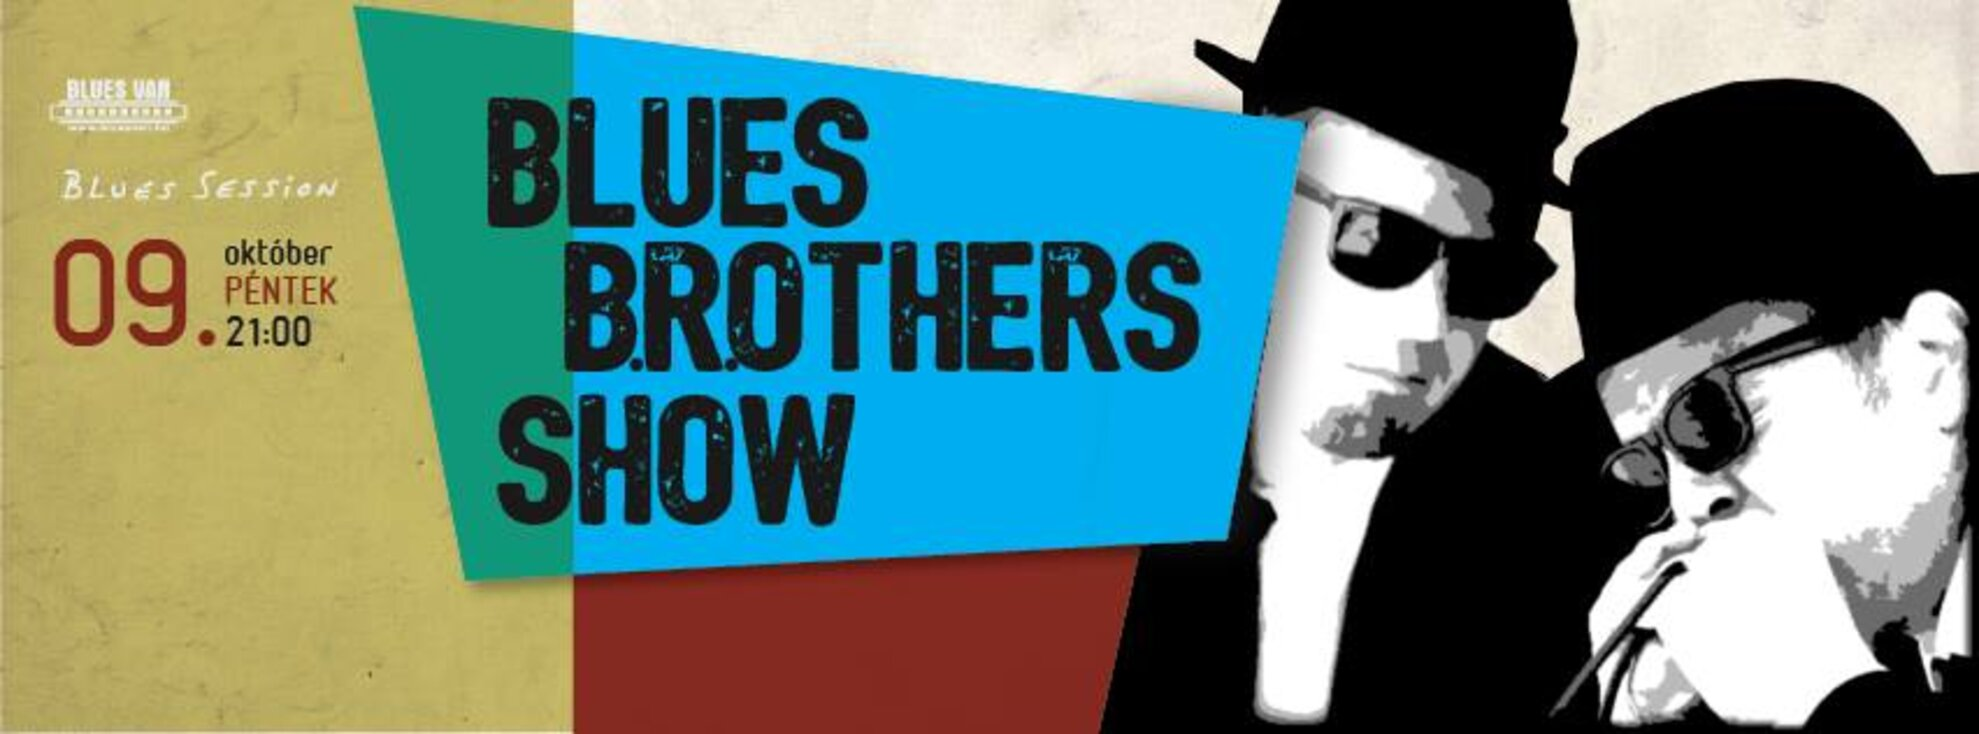 Blues B.r.others Show